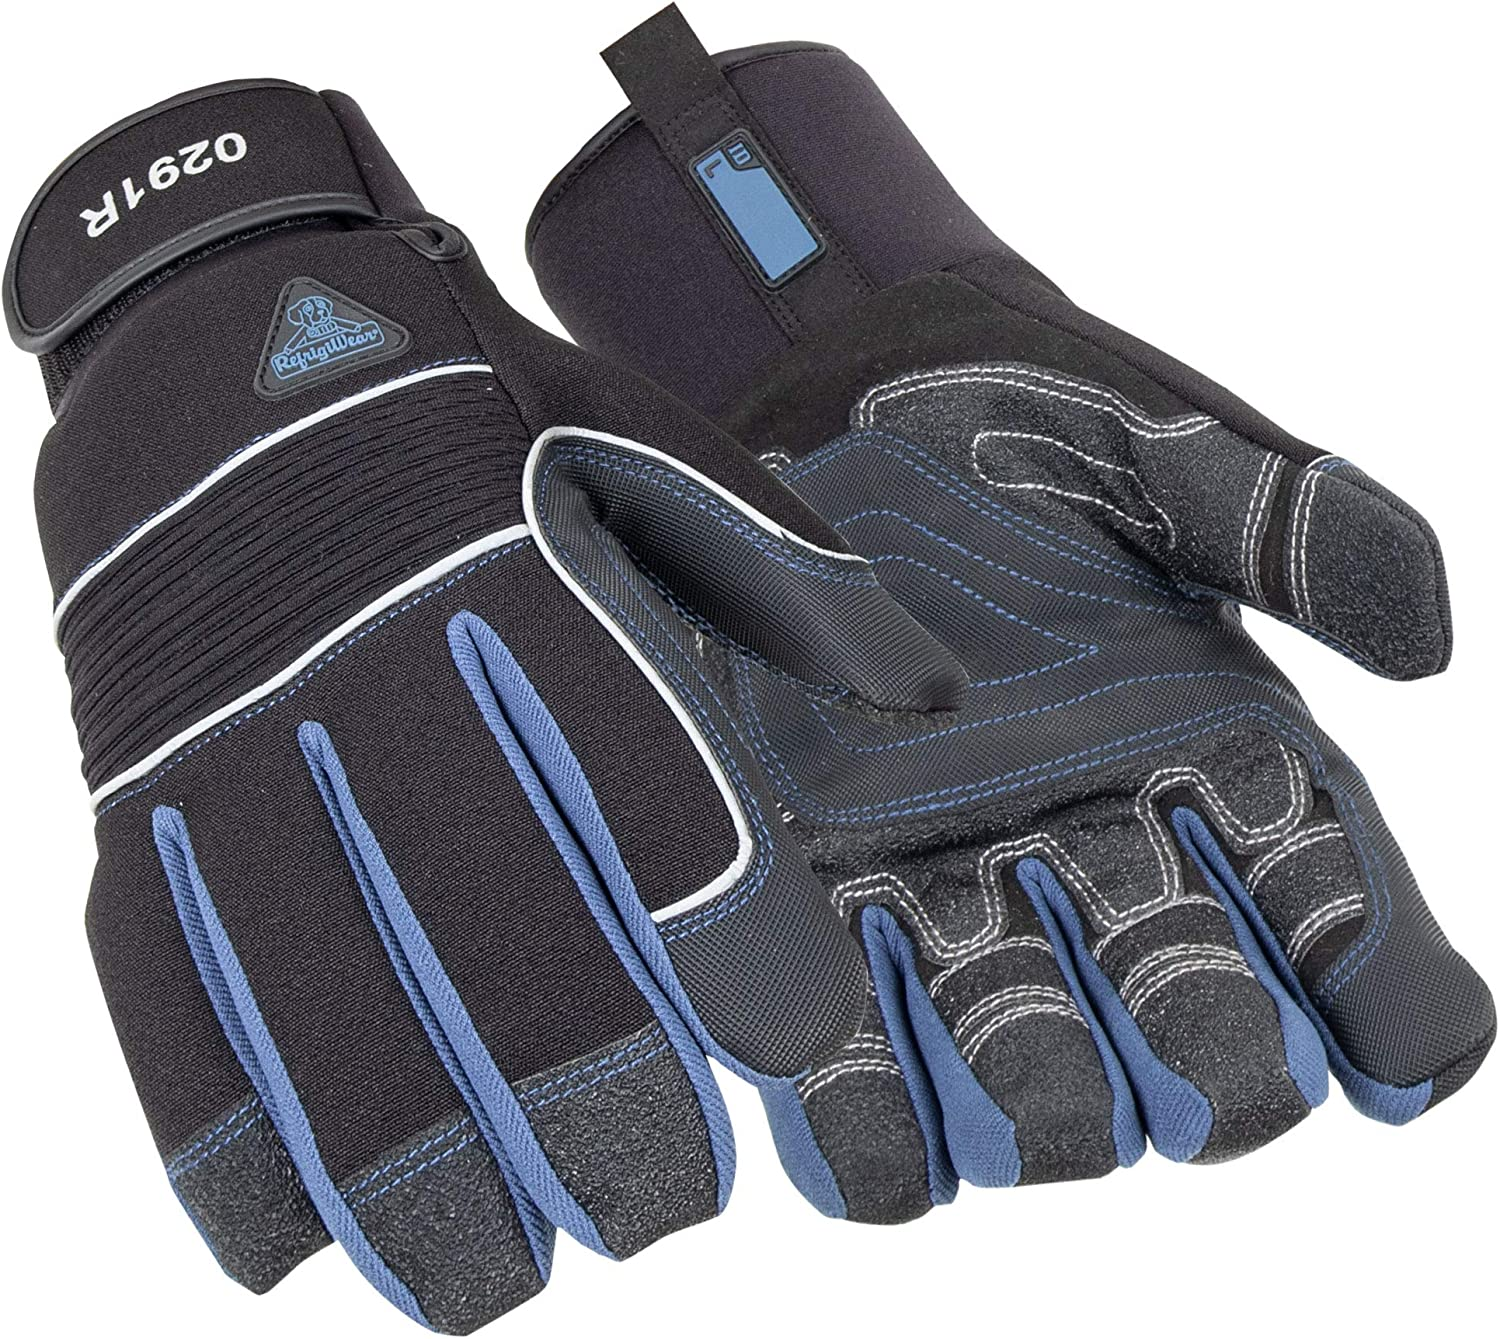 RefrigiWear Waterproof Insulated Iron-Tuff Gloves with Grip and Abrasion Pads